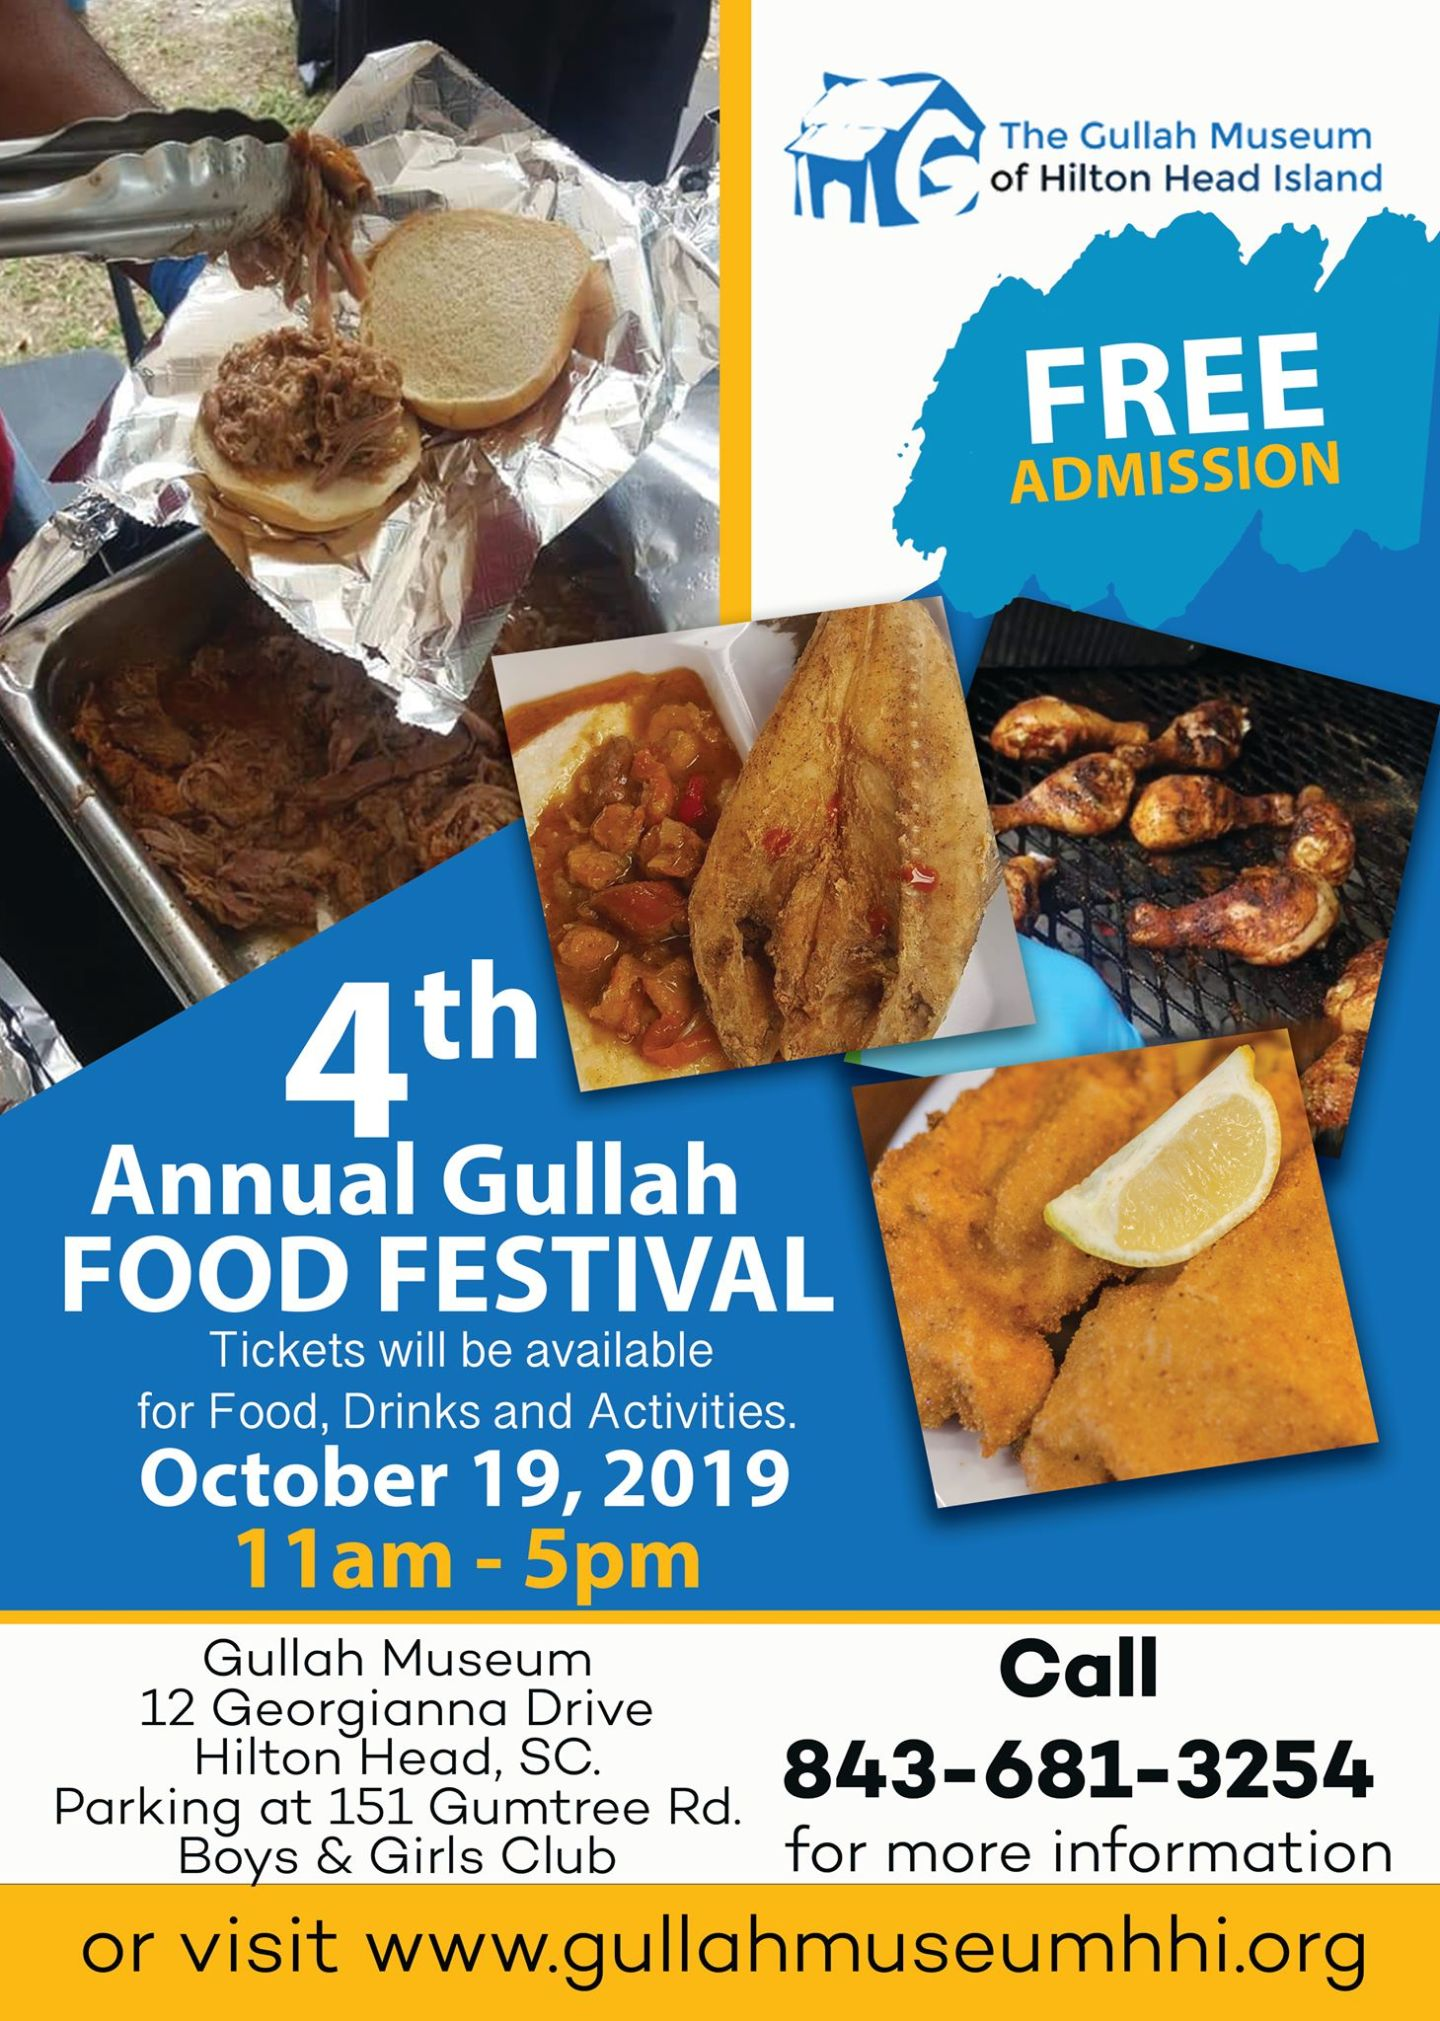 69154409_10156573734371169_8939618631533199360_o-1 Gullah Food Festival in Hilton Head Island, SC